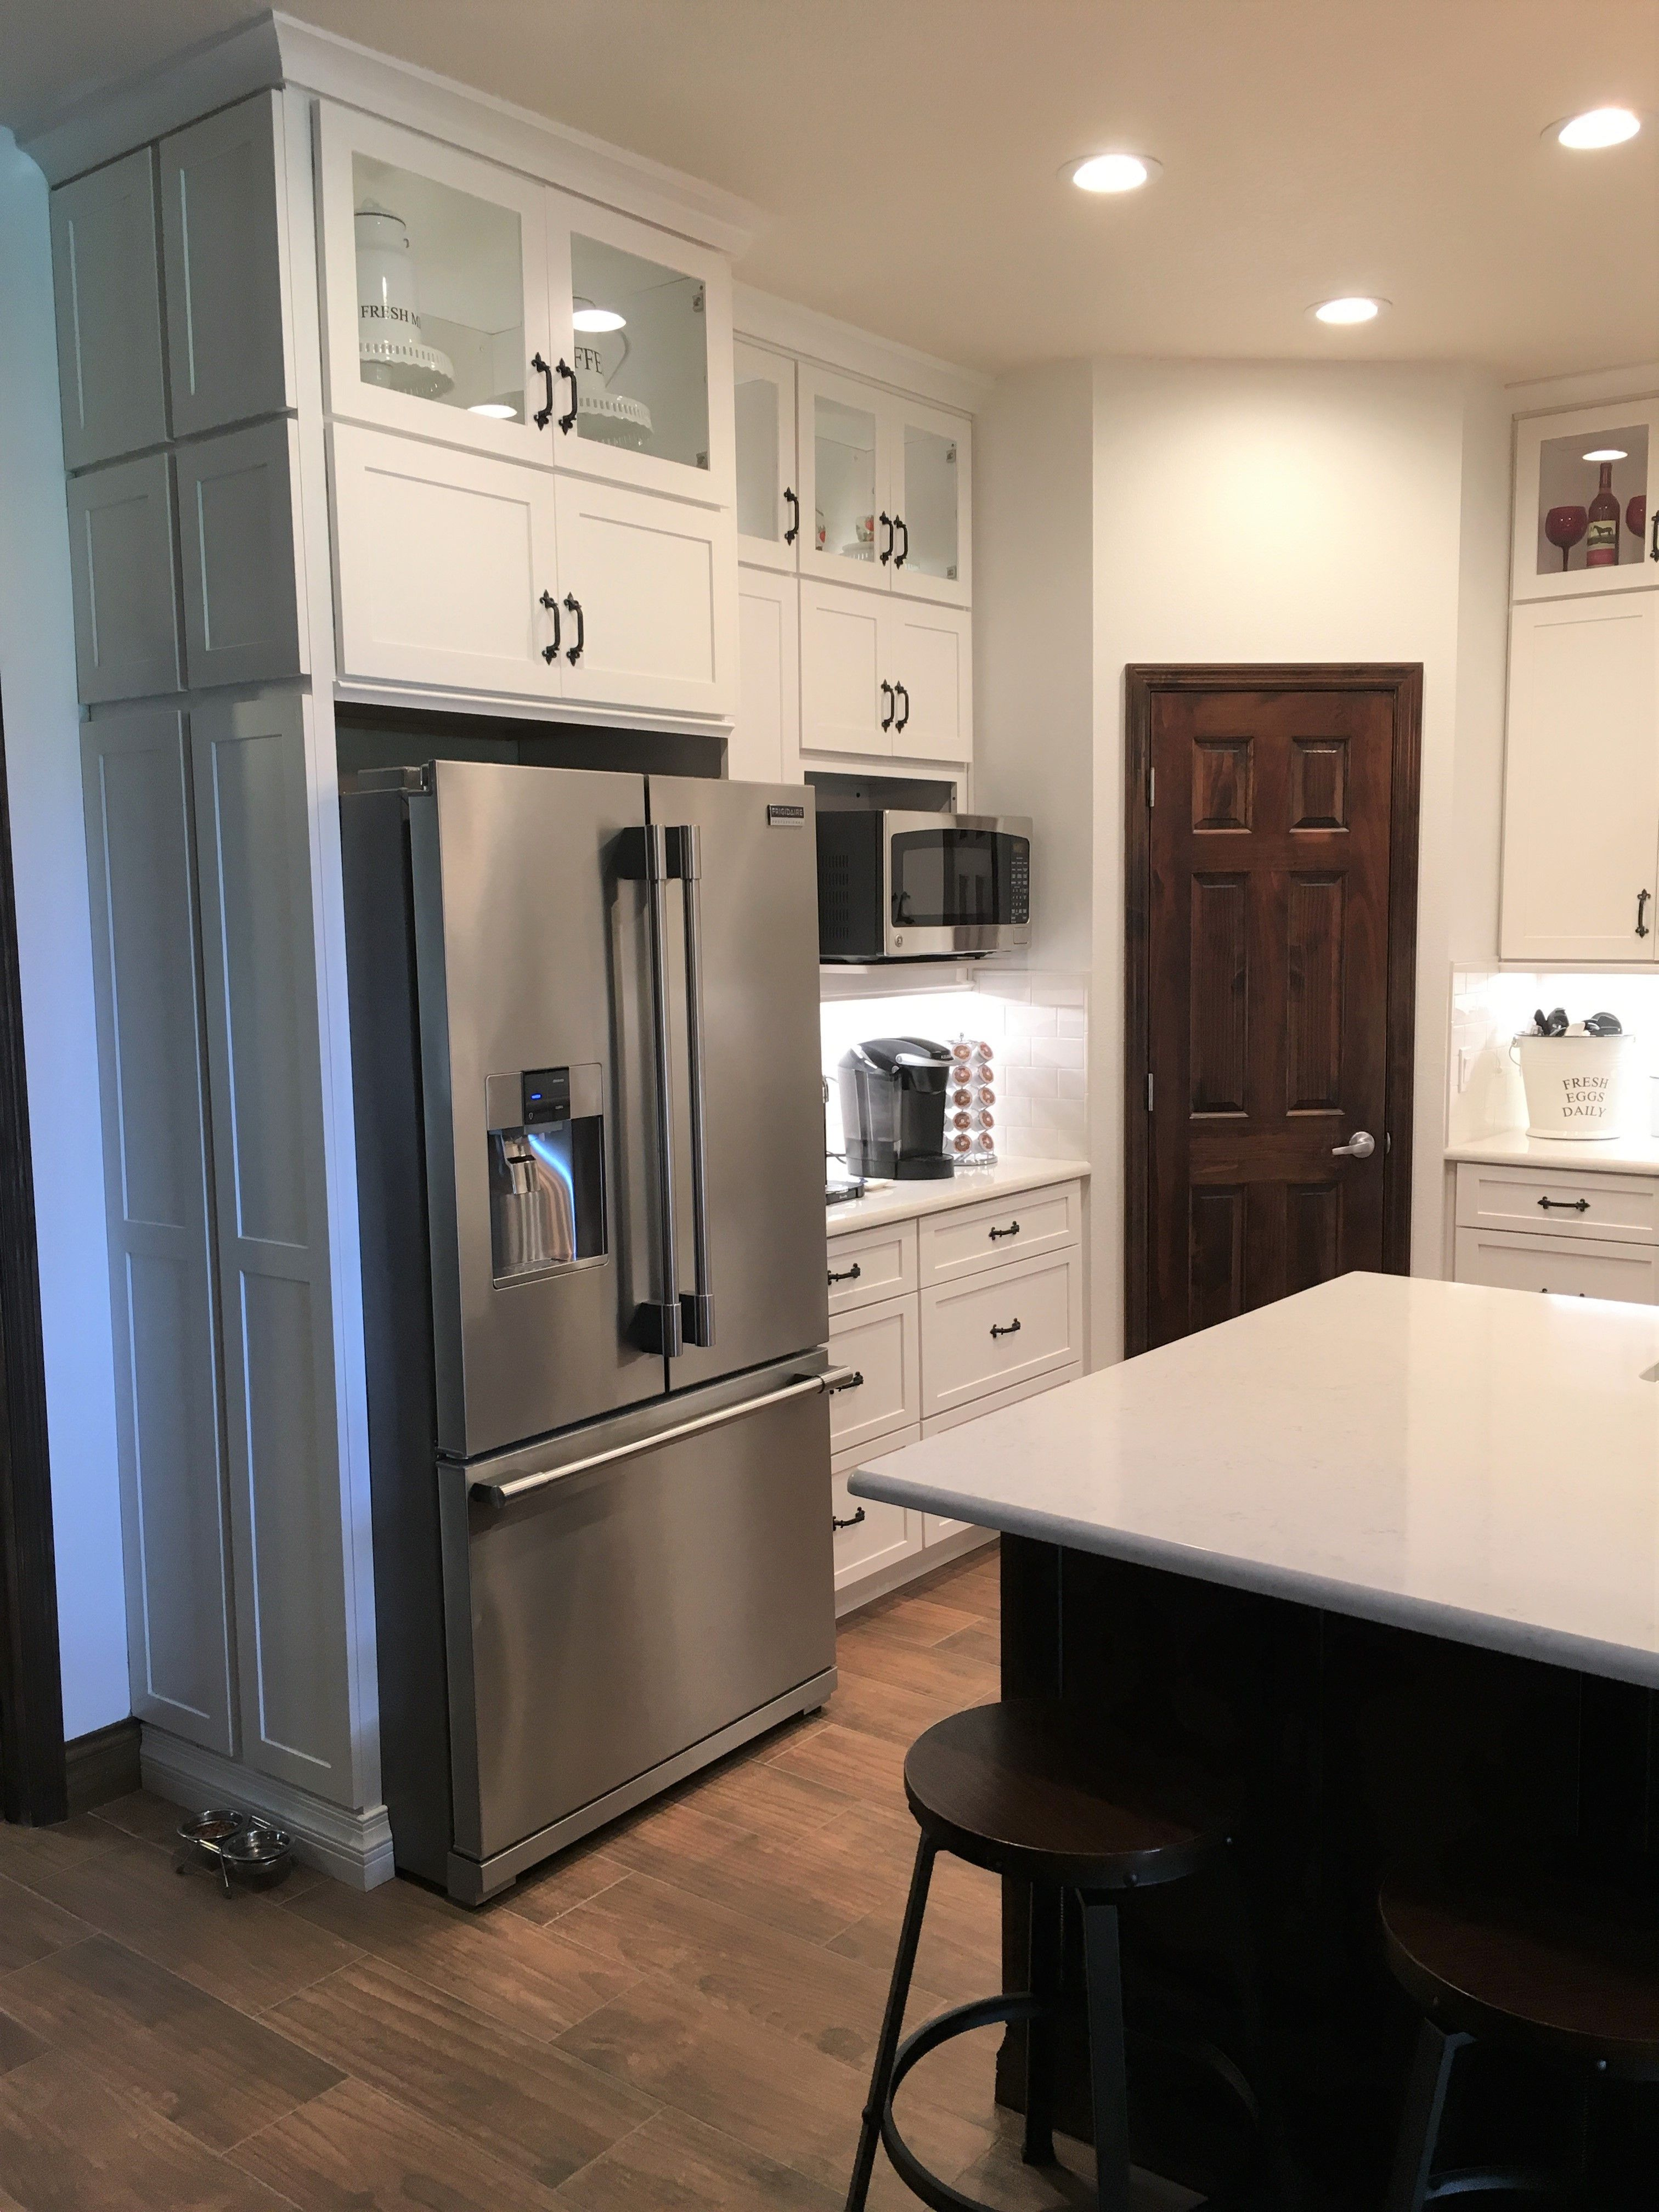 Check Out This Beautiful Craftsman Farmhouse Kitchen This Design Was Created By Lowe S Project Specialist Krist Kitchen Installation Kitchen Cabinet Remodel Kitchen Remodel